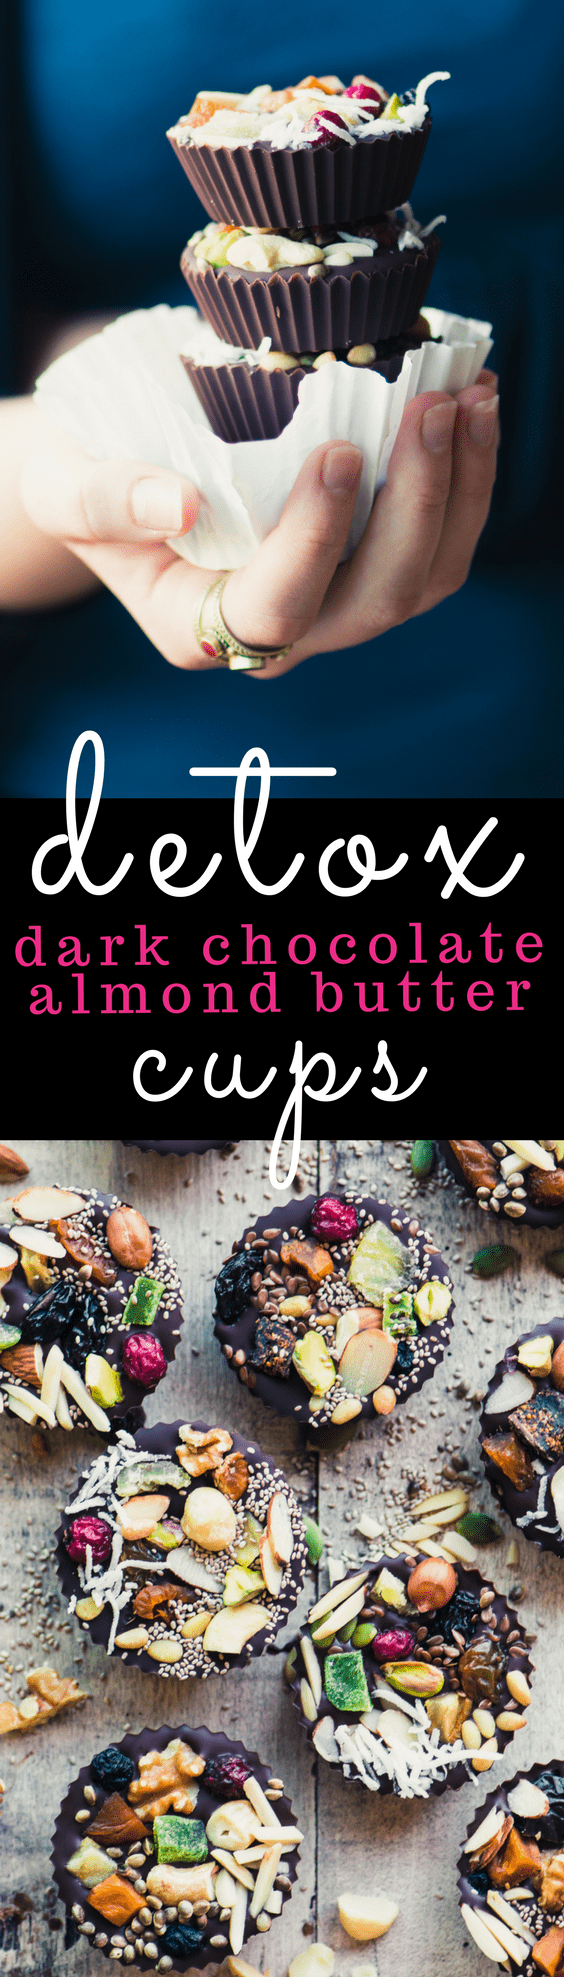 Detox Dark Chocolate Almond Butter Cups ~ do you need a little something sweet every day? Don't wreck your diet with a pint of ice cream or a package of cookies, try one of these healthy dark chocolate almond butter cups. They'll satisfy your cravings without putting a dent in your healthy lifestyle!